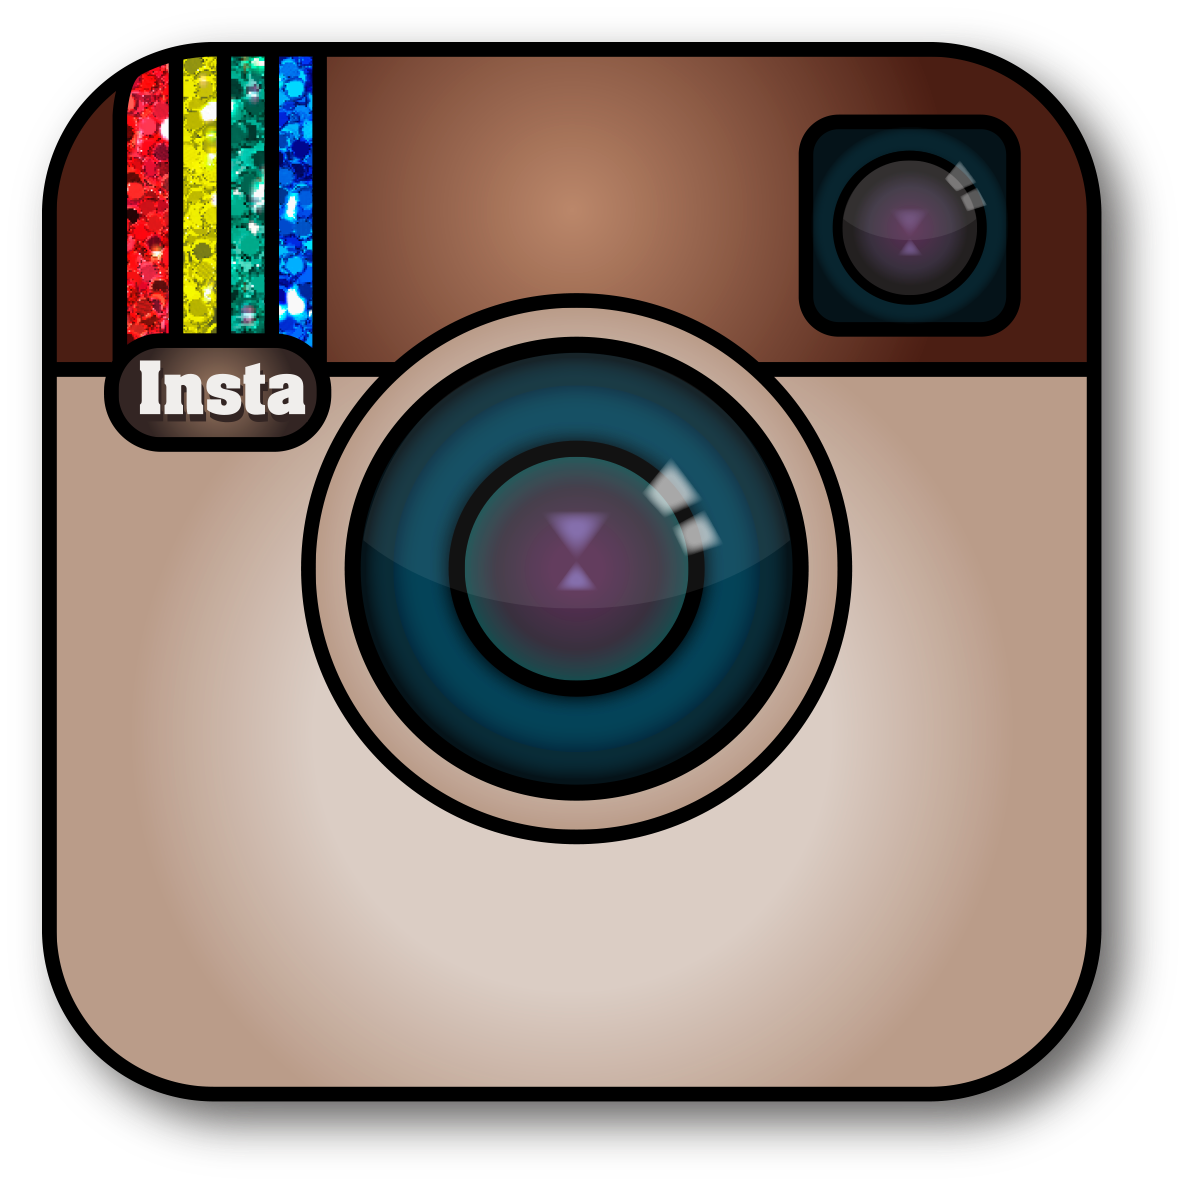 Cute instagram clipart free graphic black and white library Utilizing Instagram in the Classroom - My Special Learners graphic black and white library